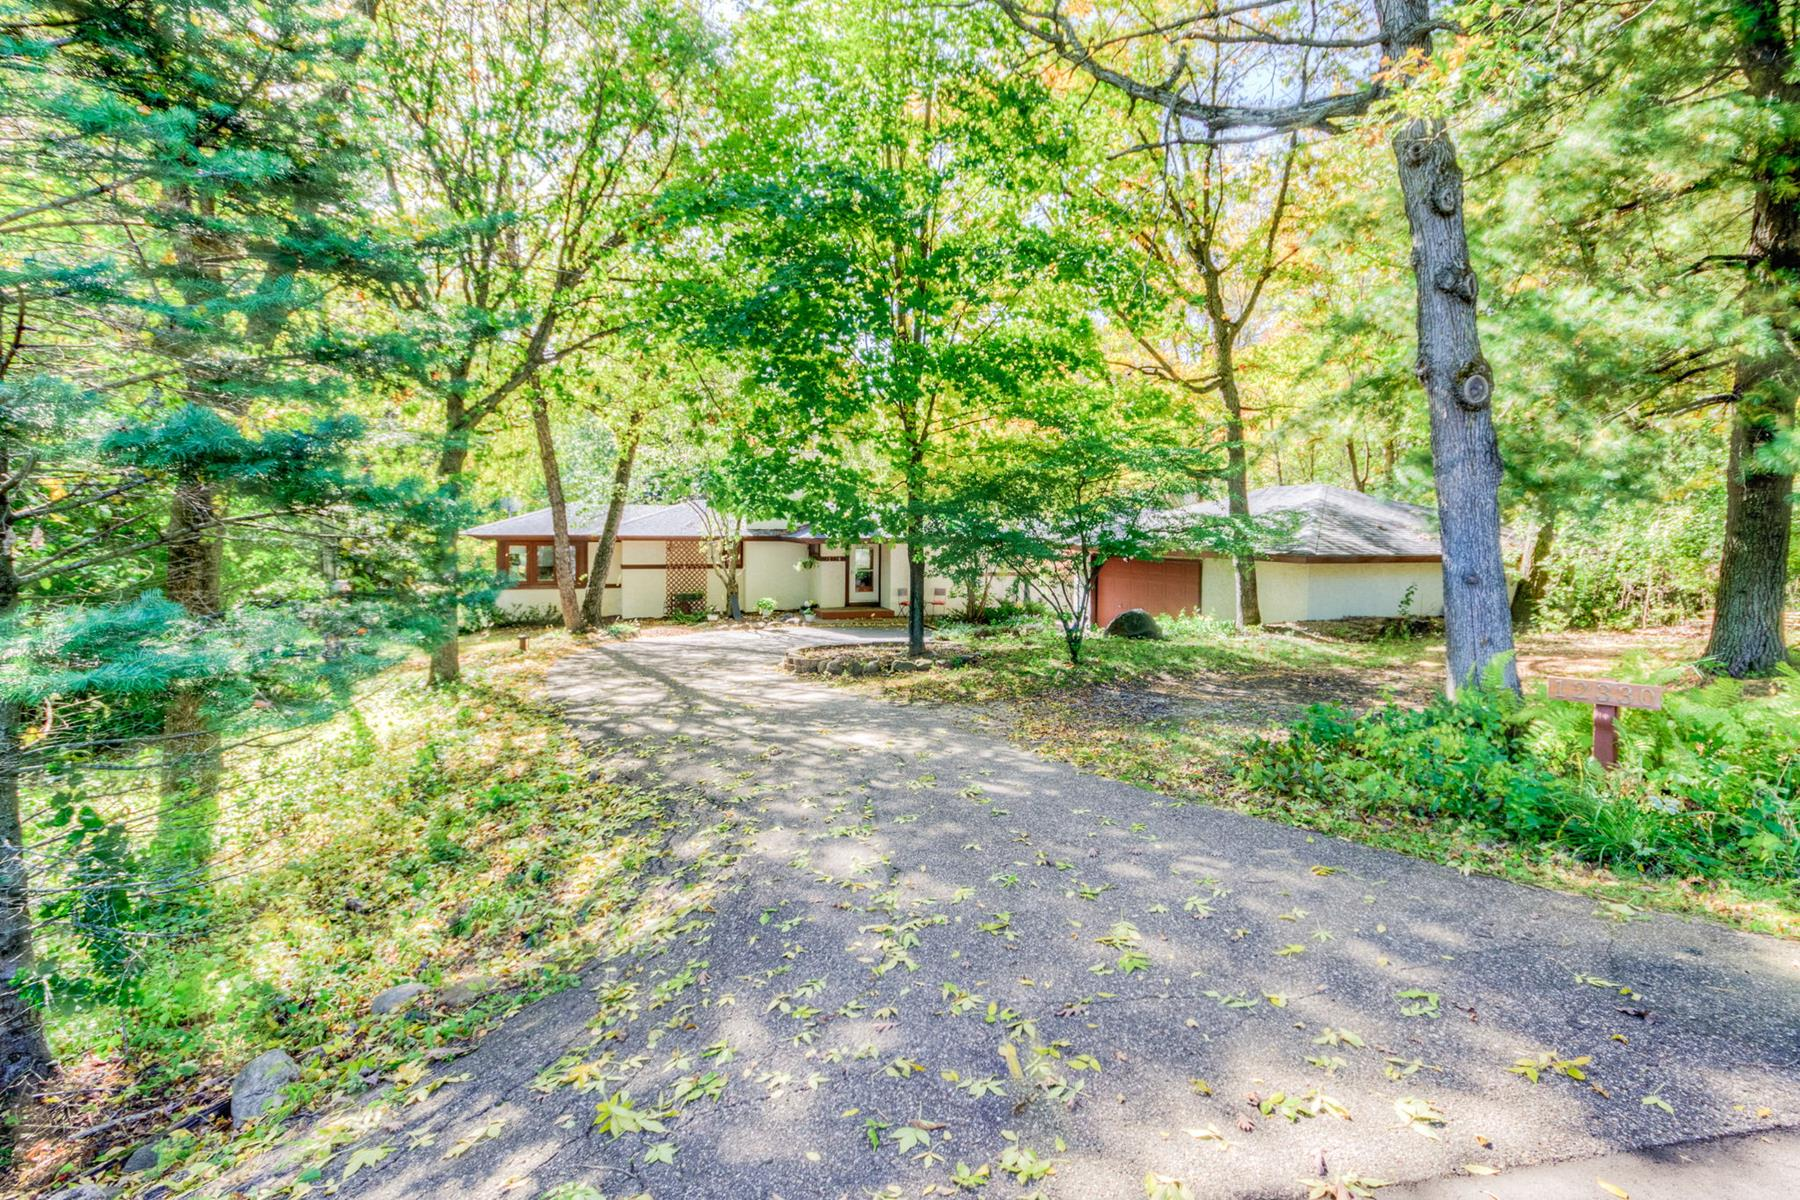 Single Family Homes for Sale at Private Home Situated on 3.23 Lush Acres in Lakeville 12330 162nd Street W Lakeville, Minnesota 55044 United States